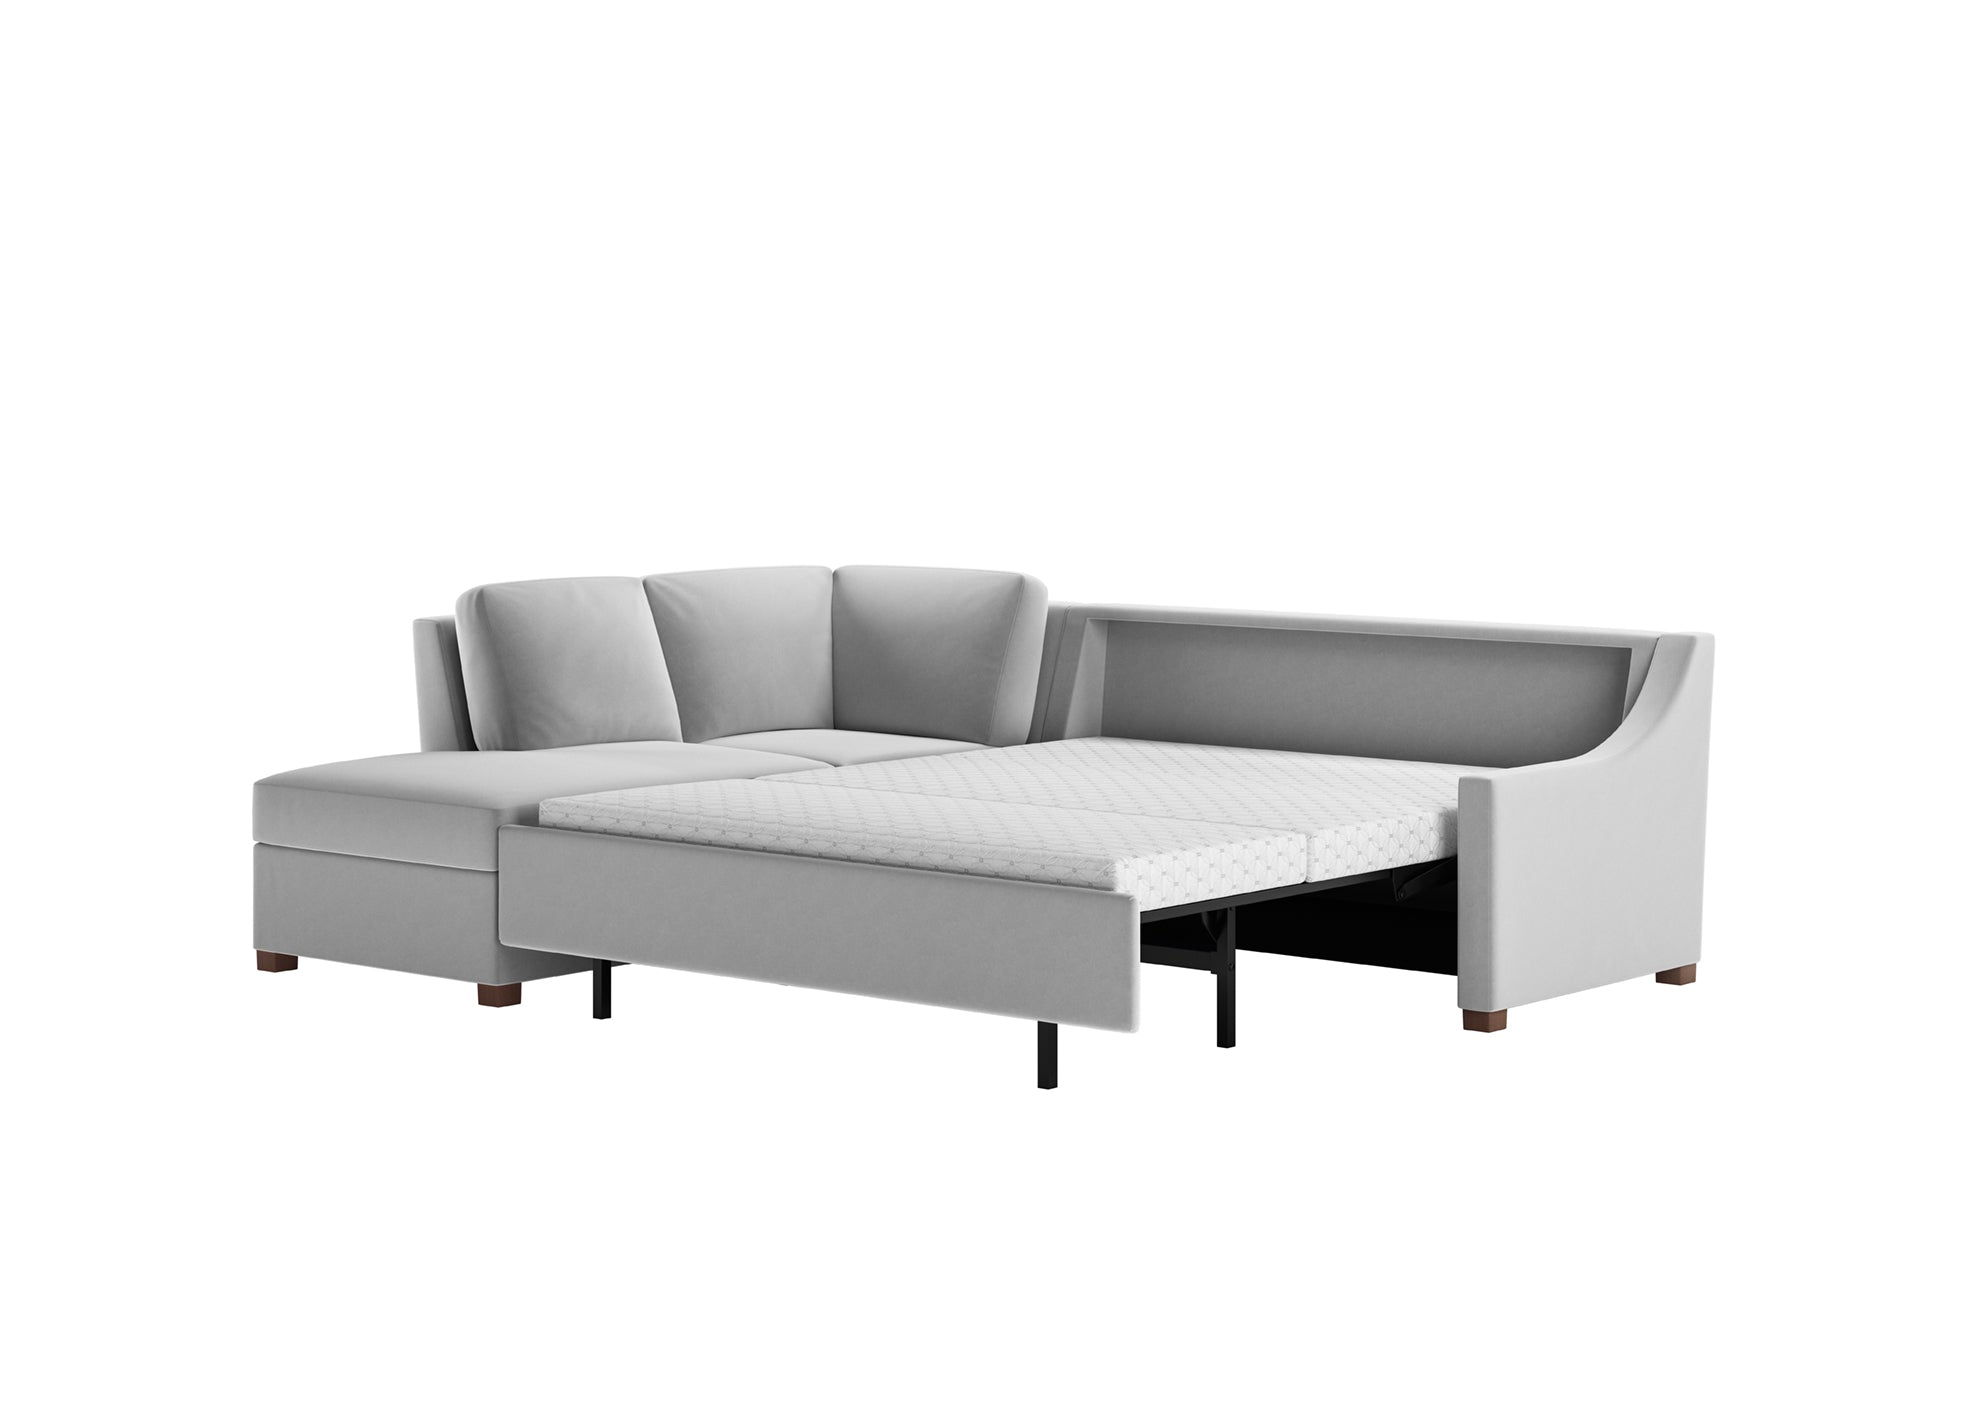 - Perry Comfort Sleeper Sofa By American Leather - Five Elements